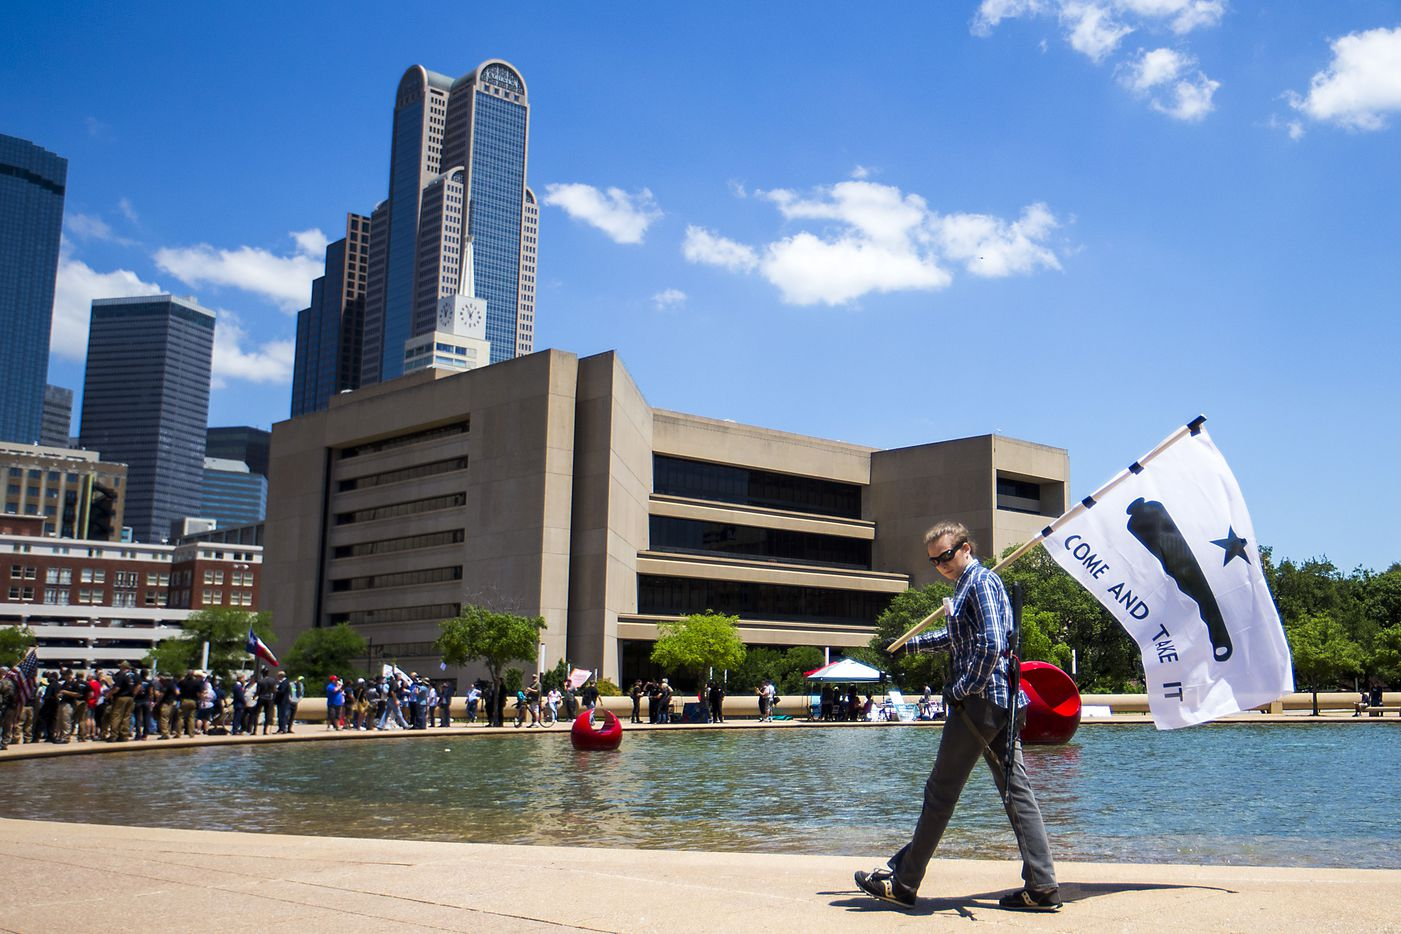 Gun rights advocate Thomas Bartram of Houston demonstrates outside Dallas City Hall at a rally organized by Open Carry Texas during the NRA Annual Meeting & Exhibits at the Kay Bailey Hutchison Convention Center on Saturday, May 5, 2018, in Dallas.